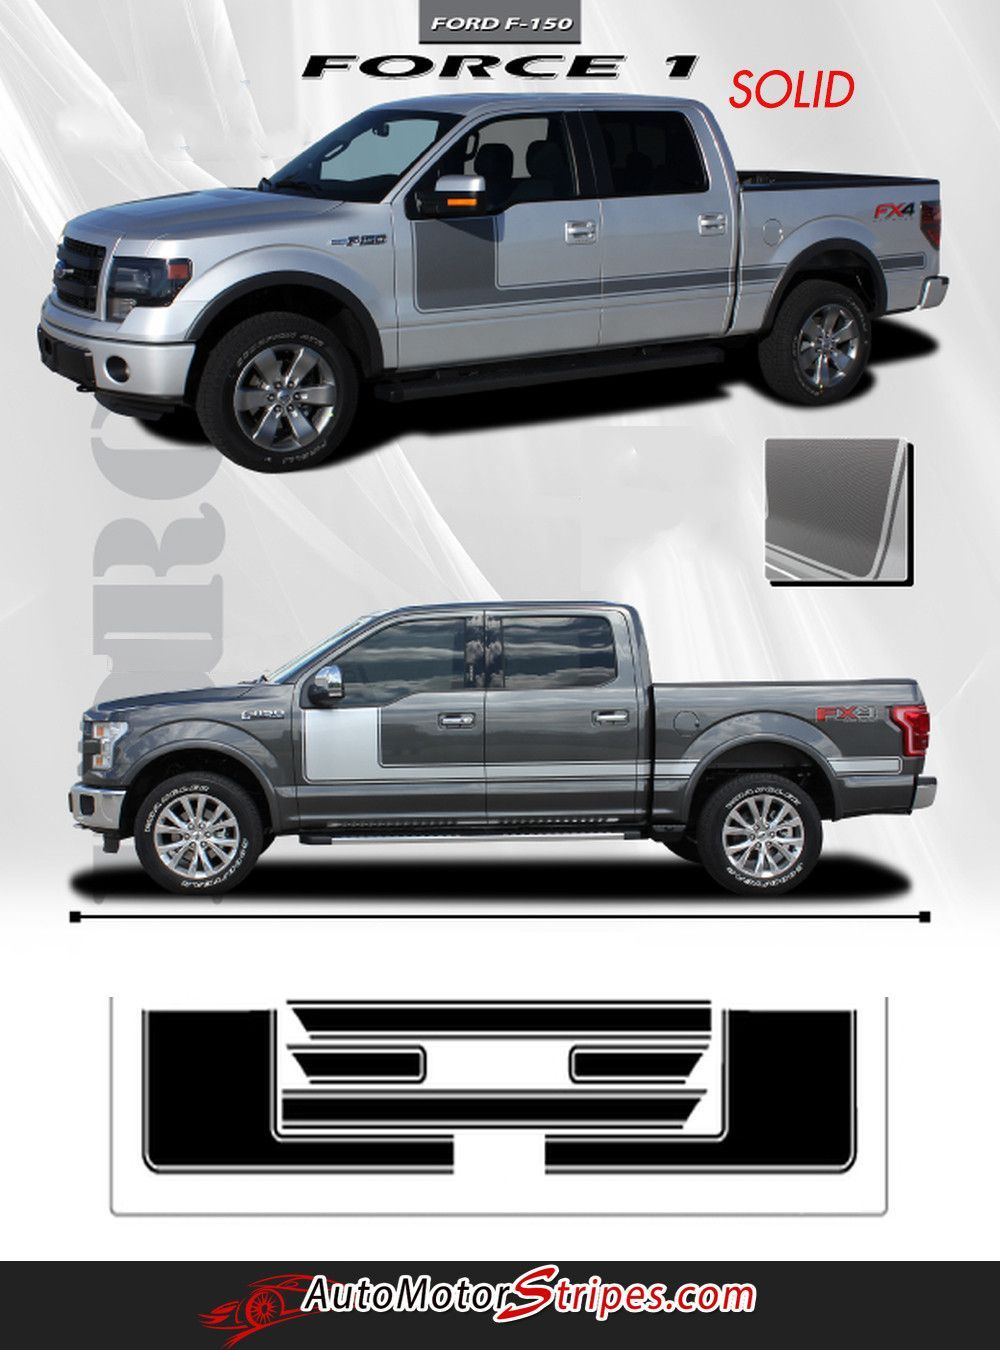 2014 Ford F 150 Stx Configurations : configurations, F-150, Force, Factory, Style, Hockey, Stick, Vinyl, Decal, Graphic, Stripes, F150,, Ford,, Truck, Accessories